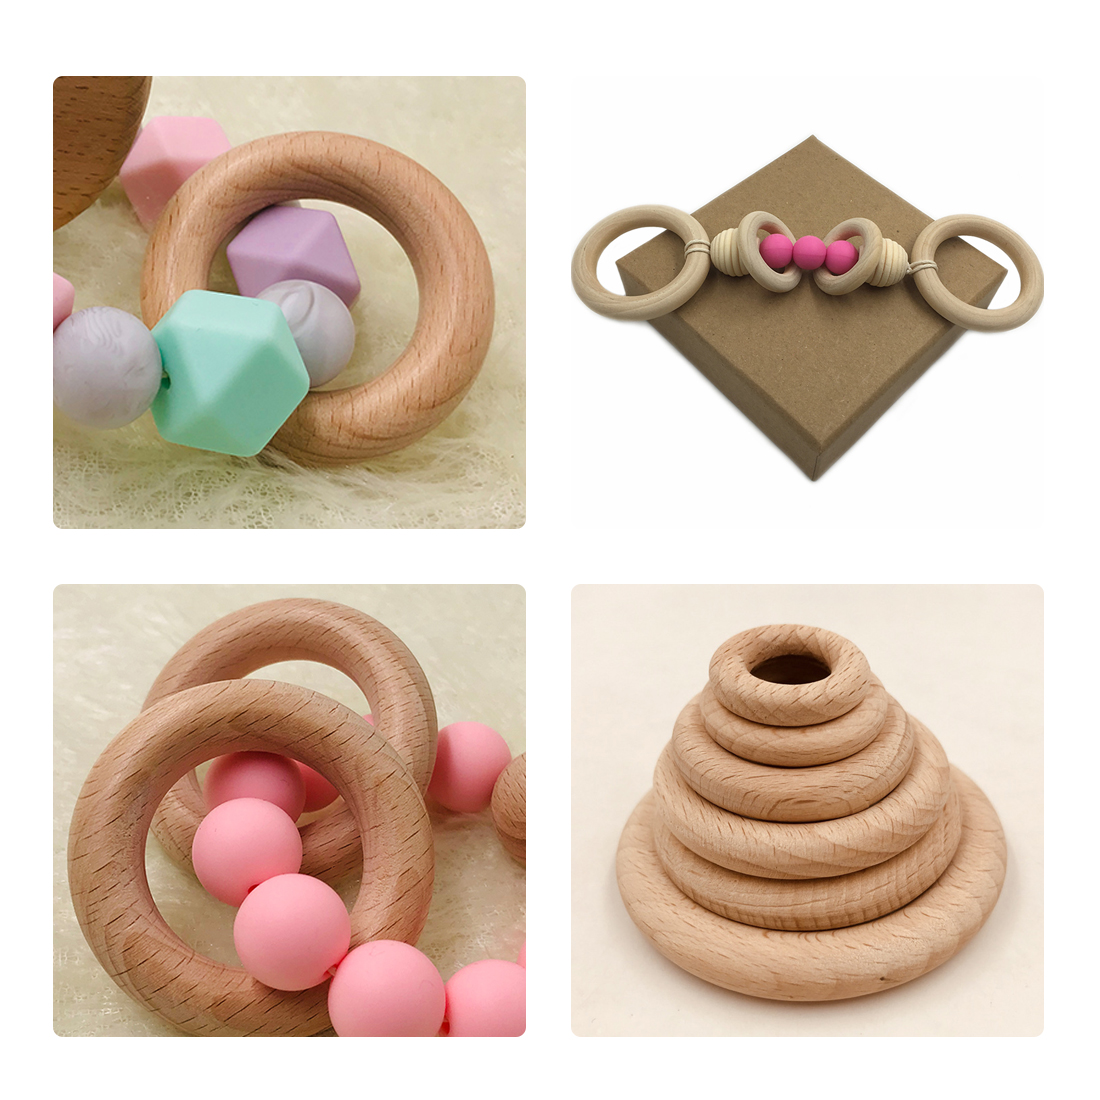 25mm-68mm Natural Wooden Baby Teething Rings Infant Teether Toy Necklace Bracelet For 3-12 Month Infants Tooth Care Products